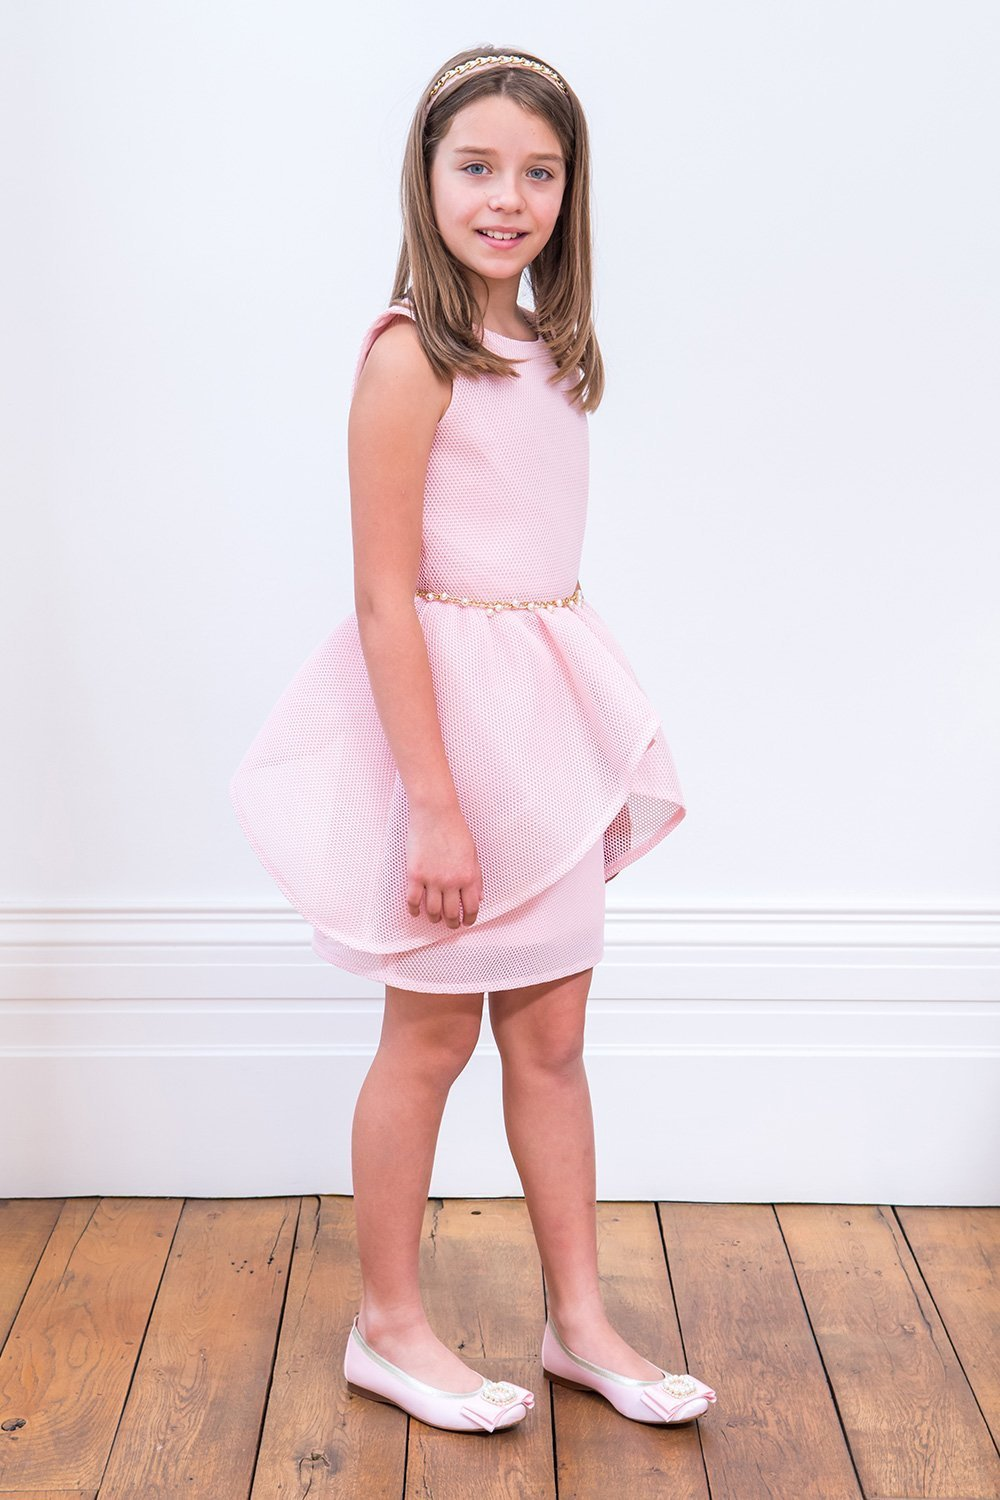 Vestido de fiesta con adornos de Candy Pink - David Child Childrens Wear